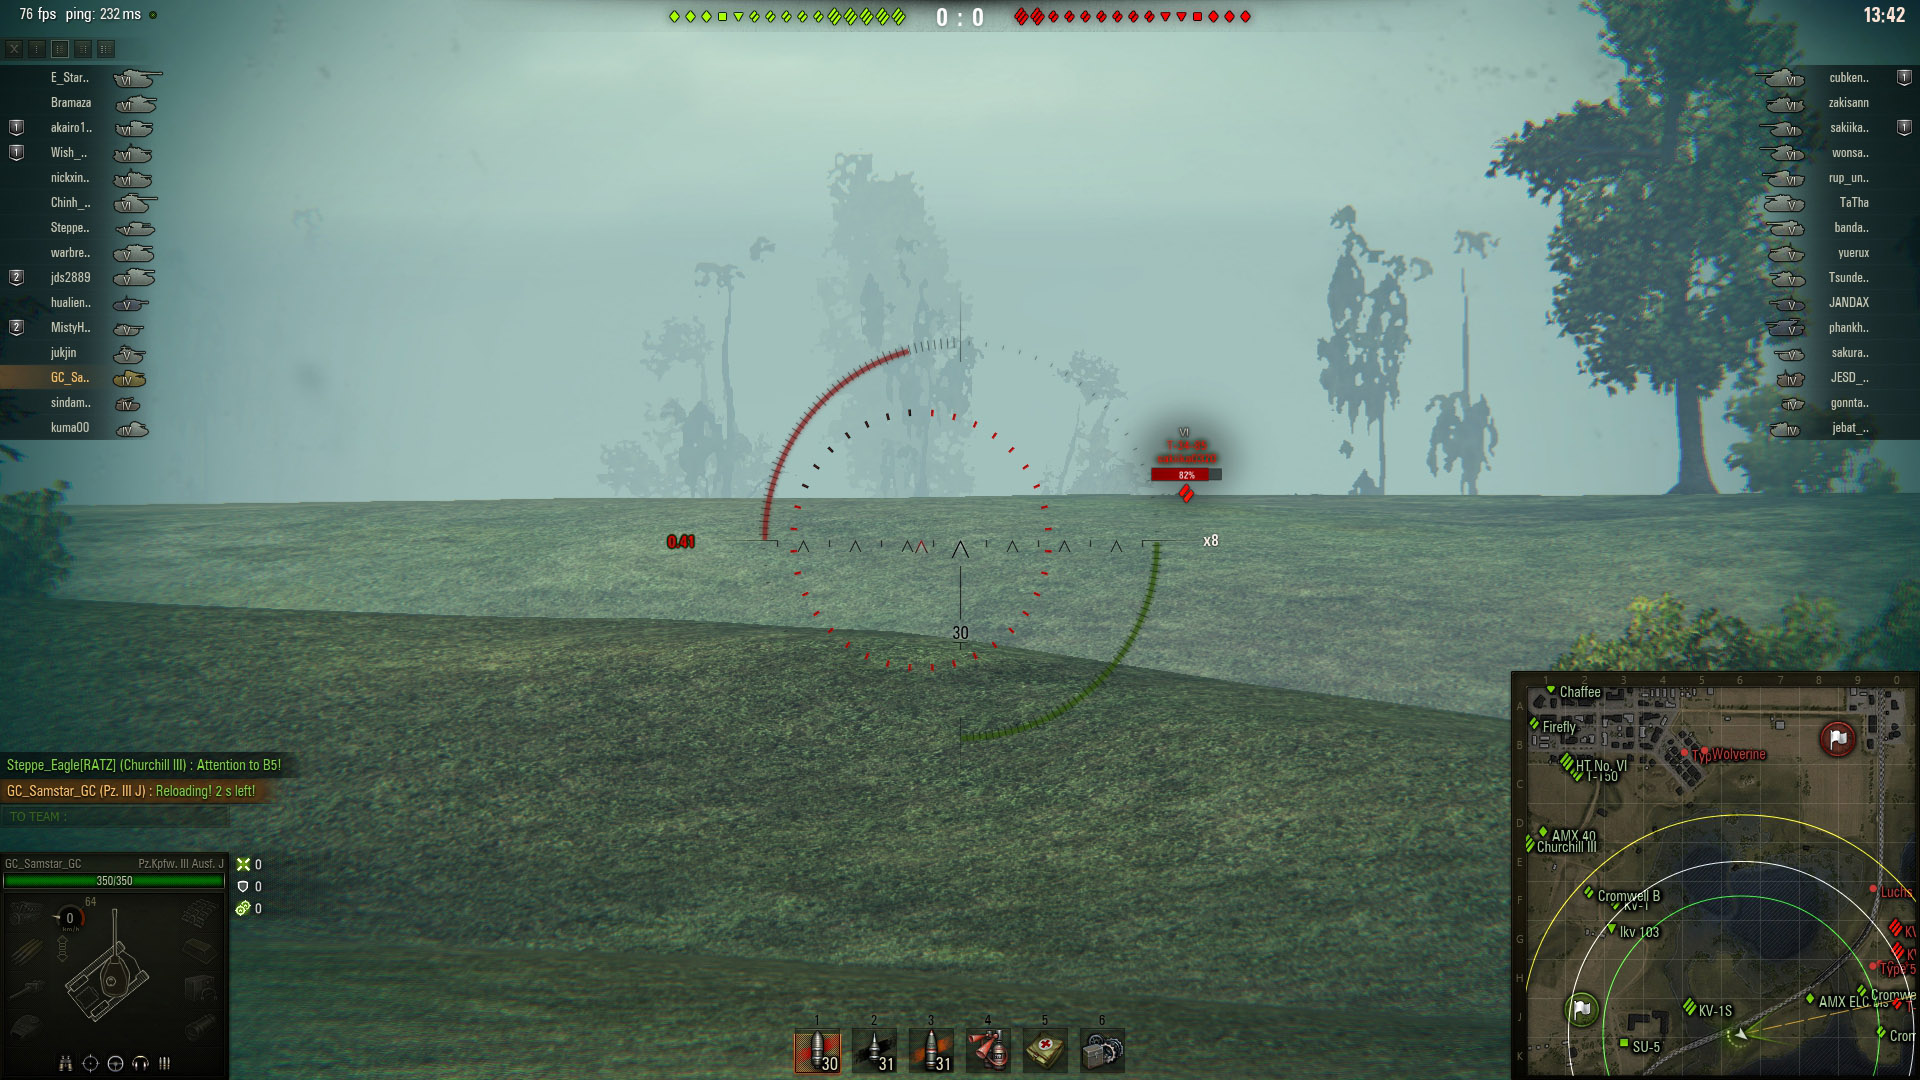 By pressing F8 when reloading you can inform your teammates when it will be finished. This is extremely handy for Tank Destroyers or SPGs with long reload times.